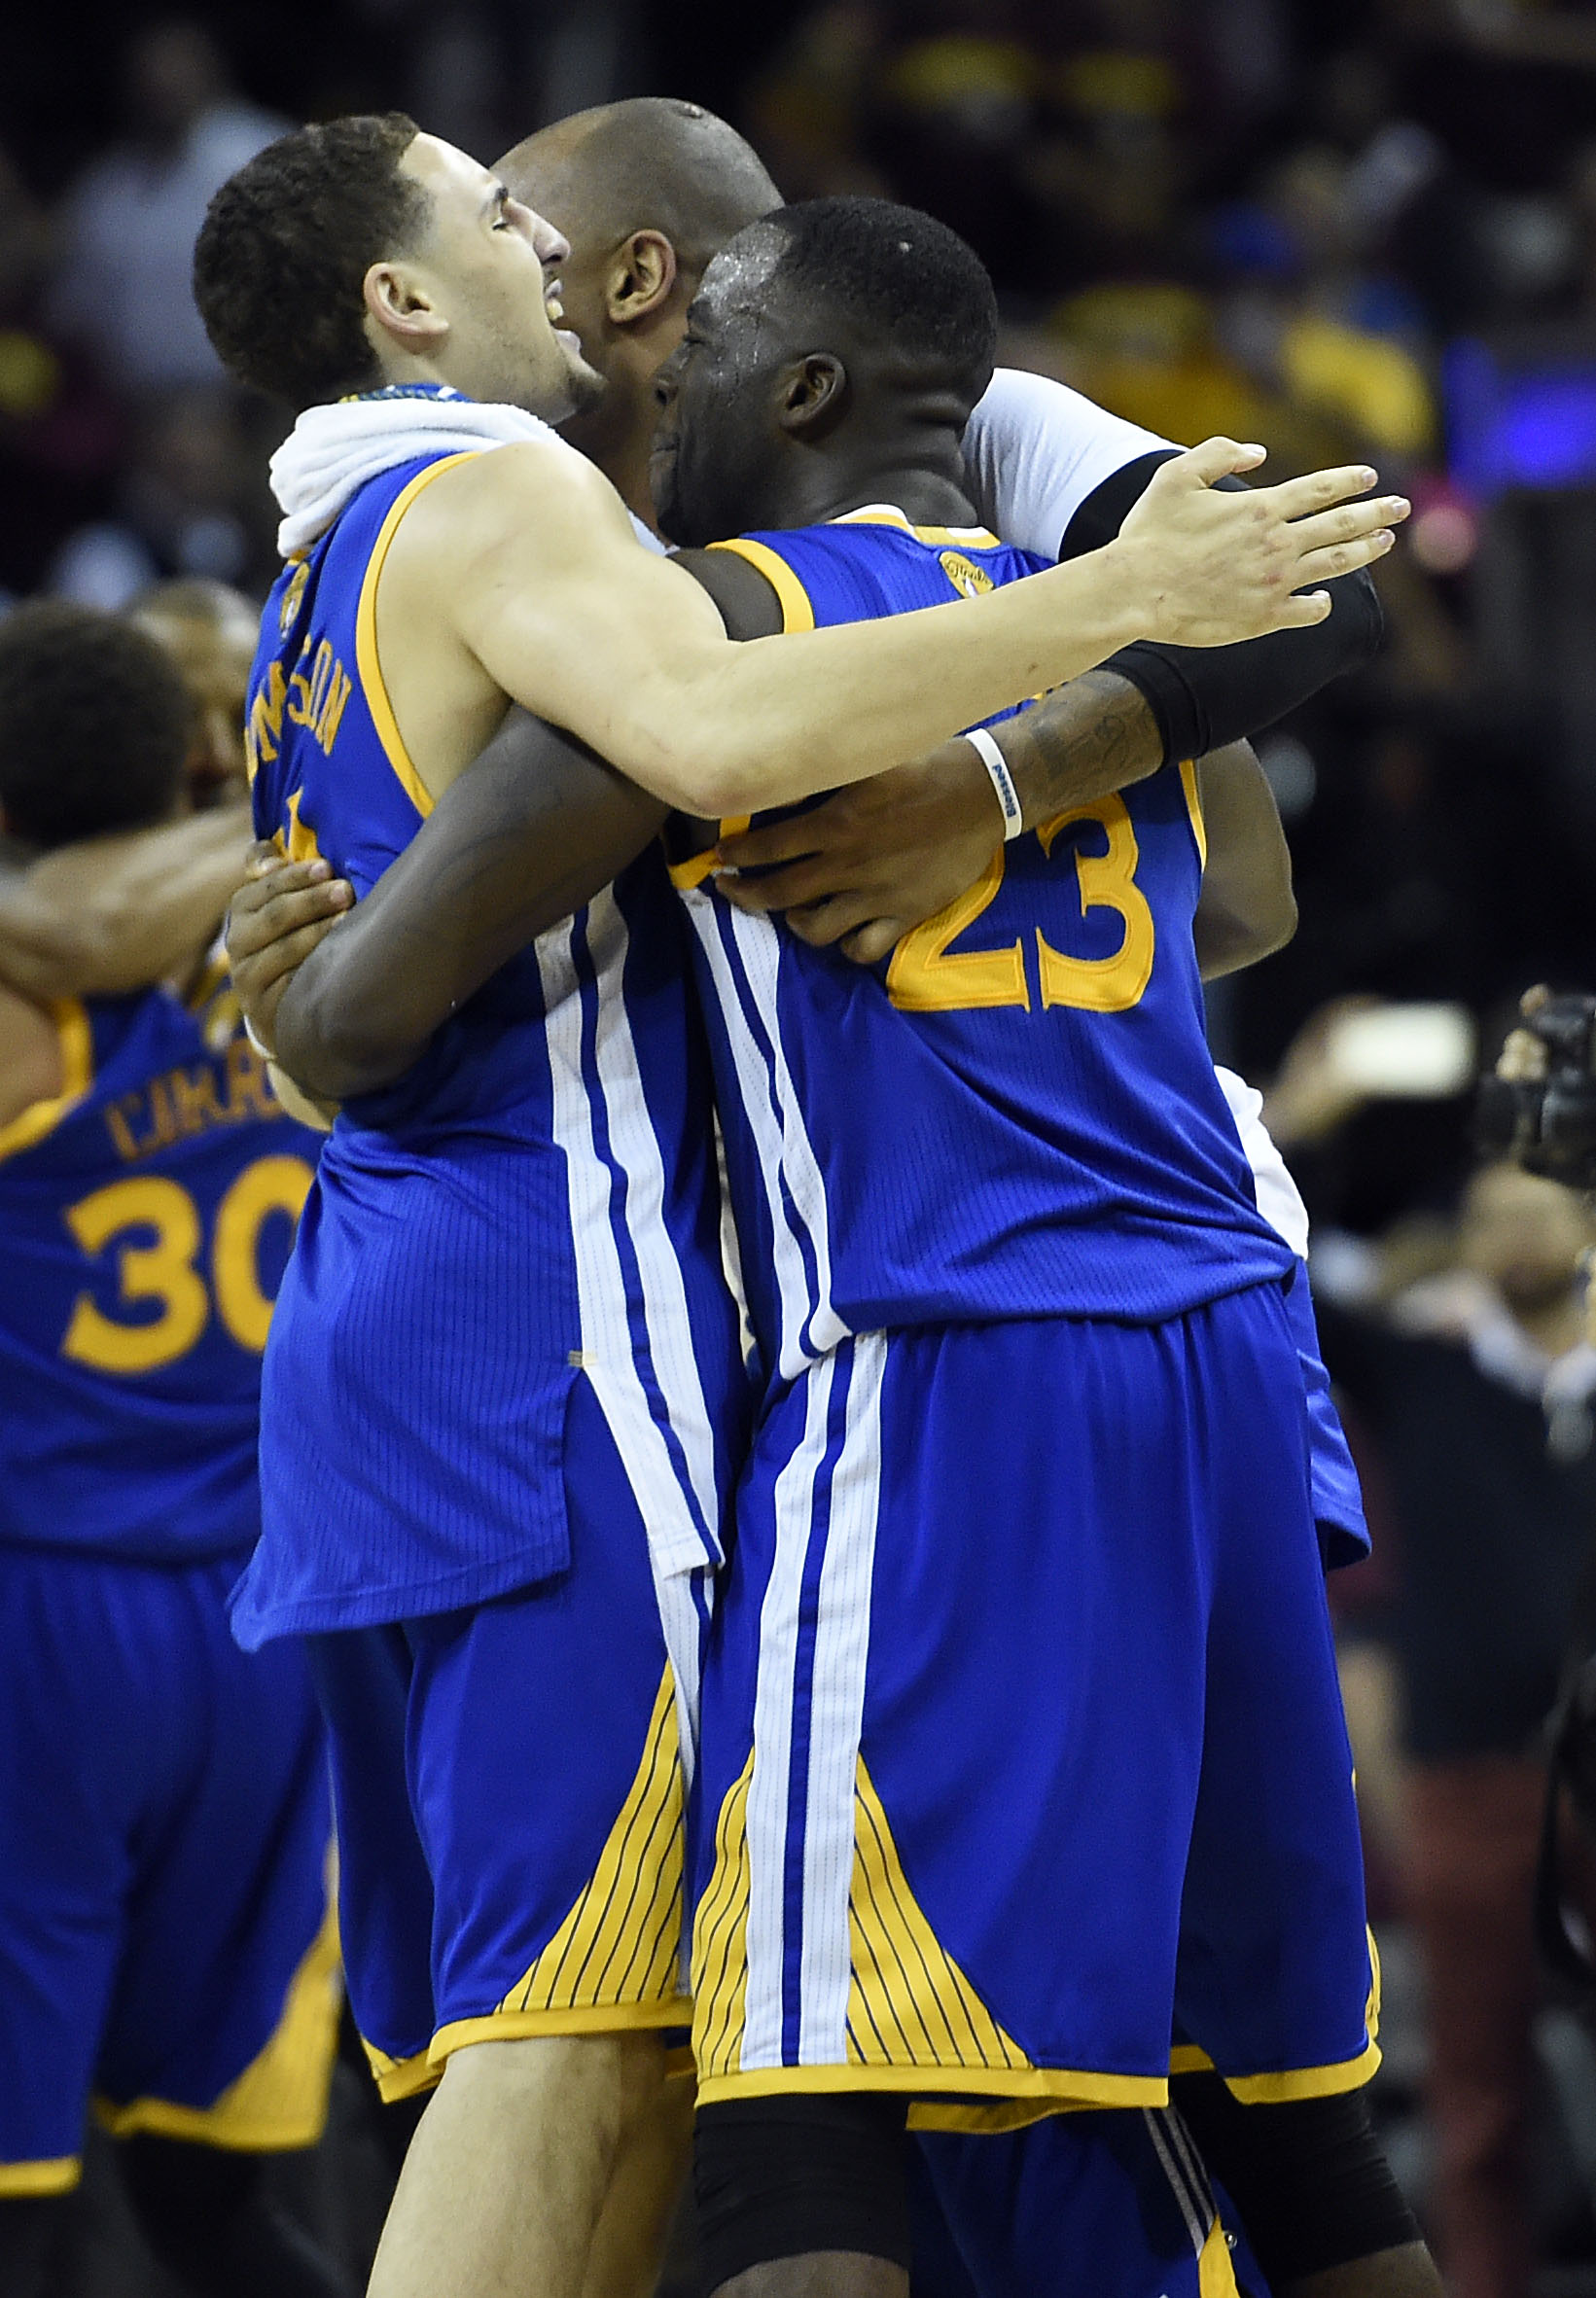 The Warriors celebrate their first World Championship in 40 years.